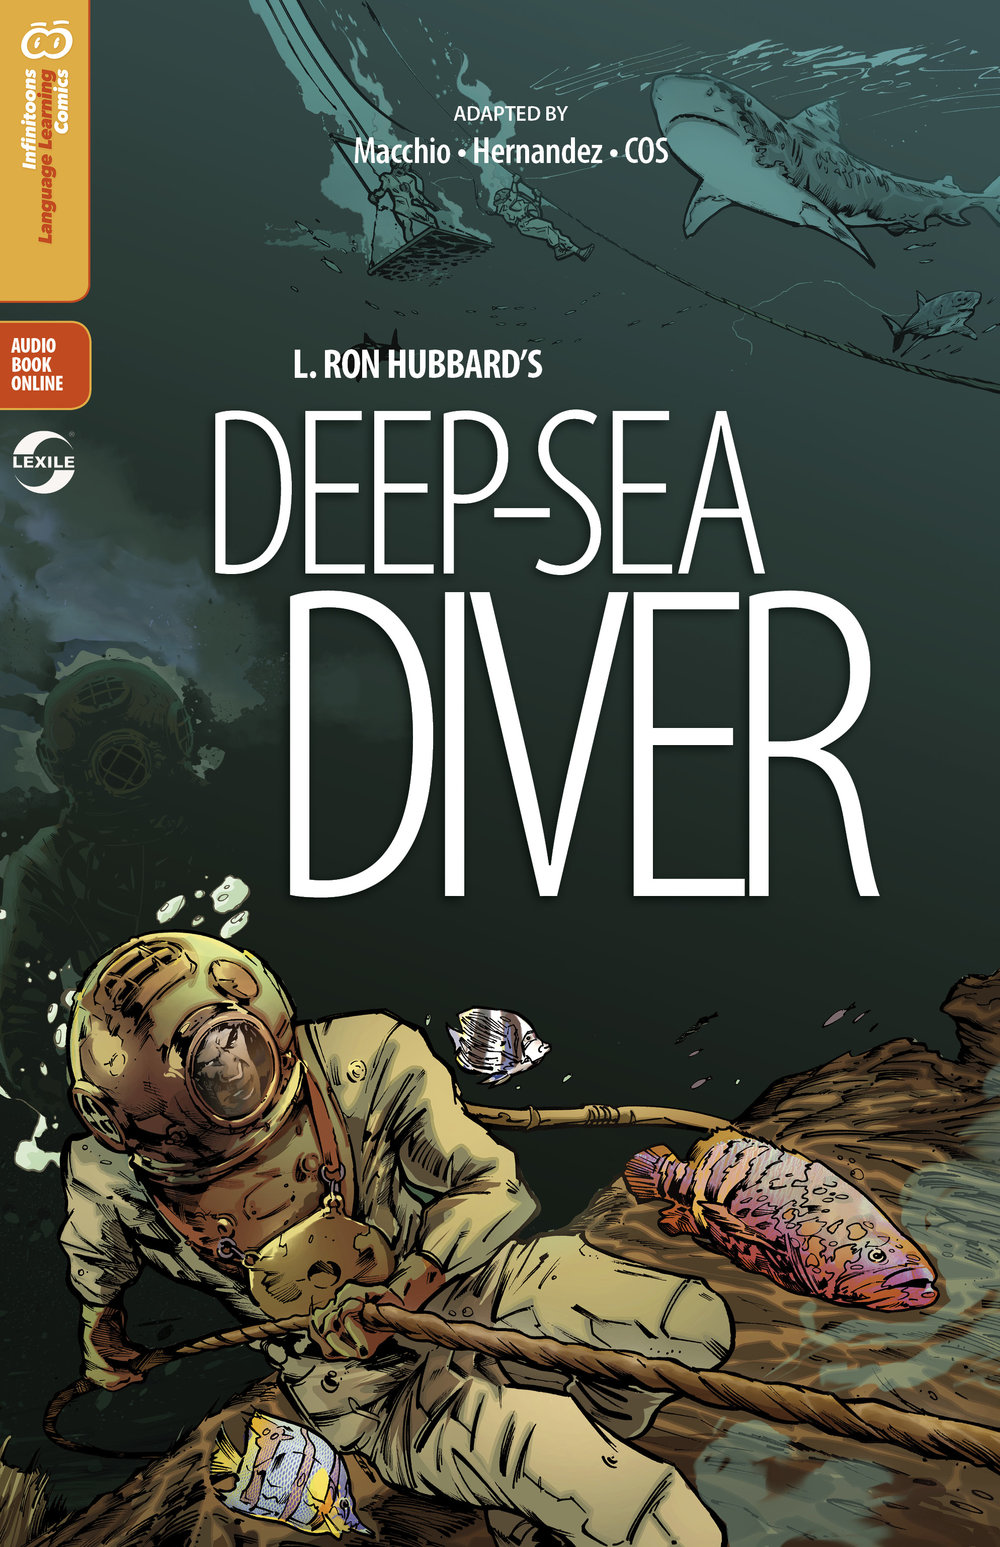 171113 Deep-Sea Diver cover and interior-AH171207.jpg